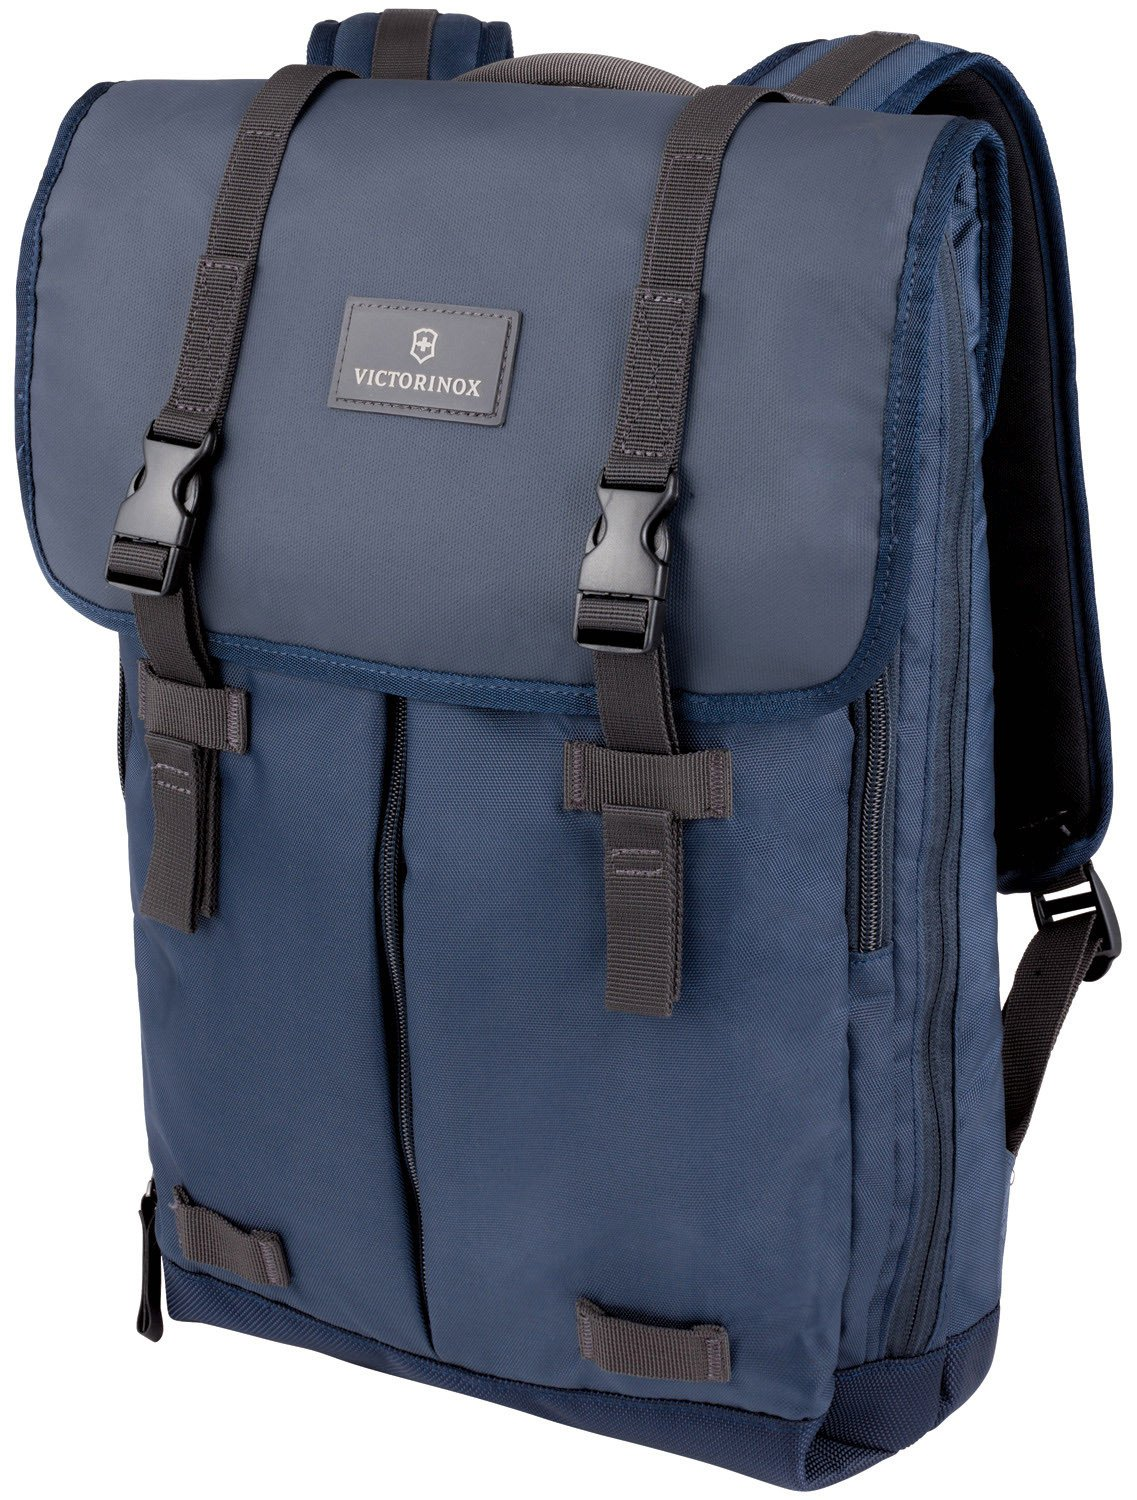 Victorinox Altmont 3.0 Flapover Laptop Backpack, Navy/Black, One Size (Model:601453) VIF8O